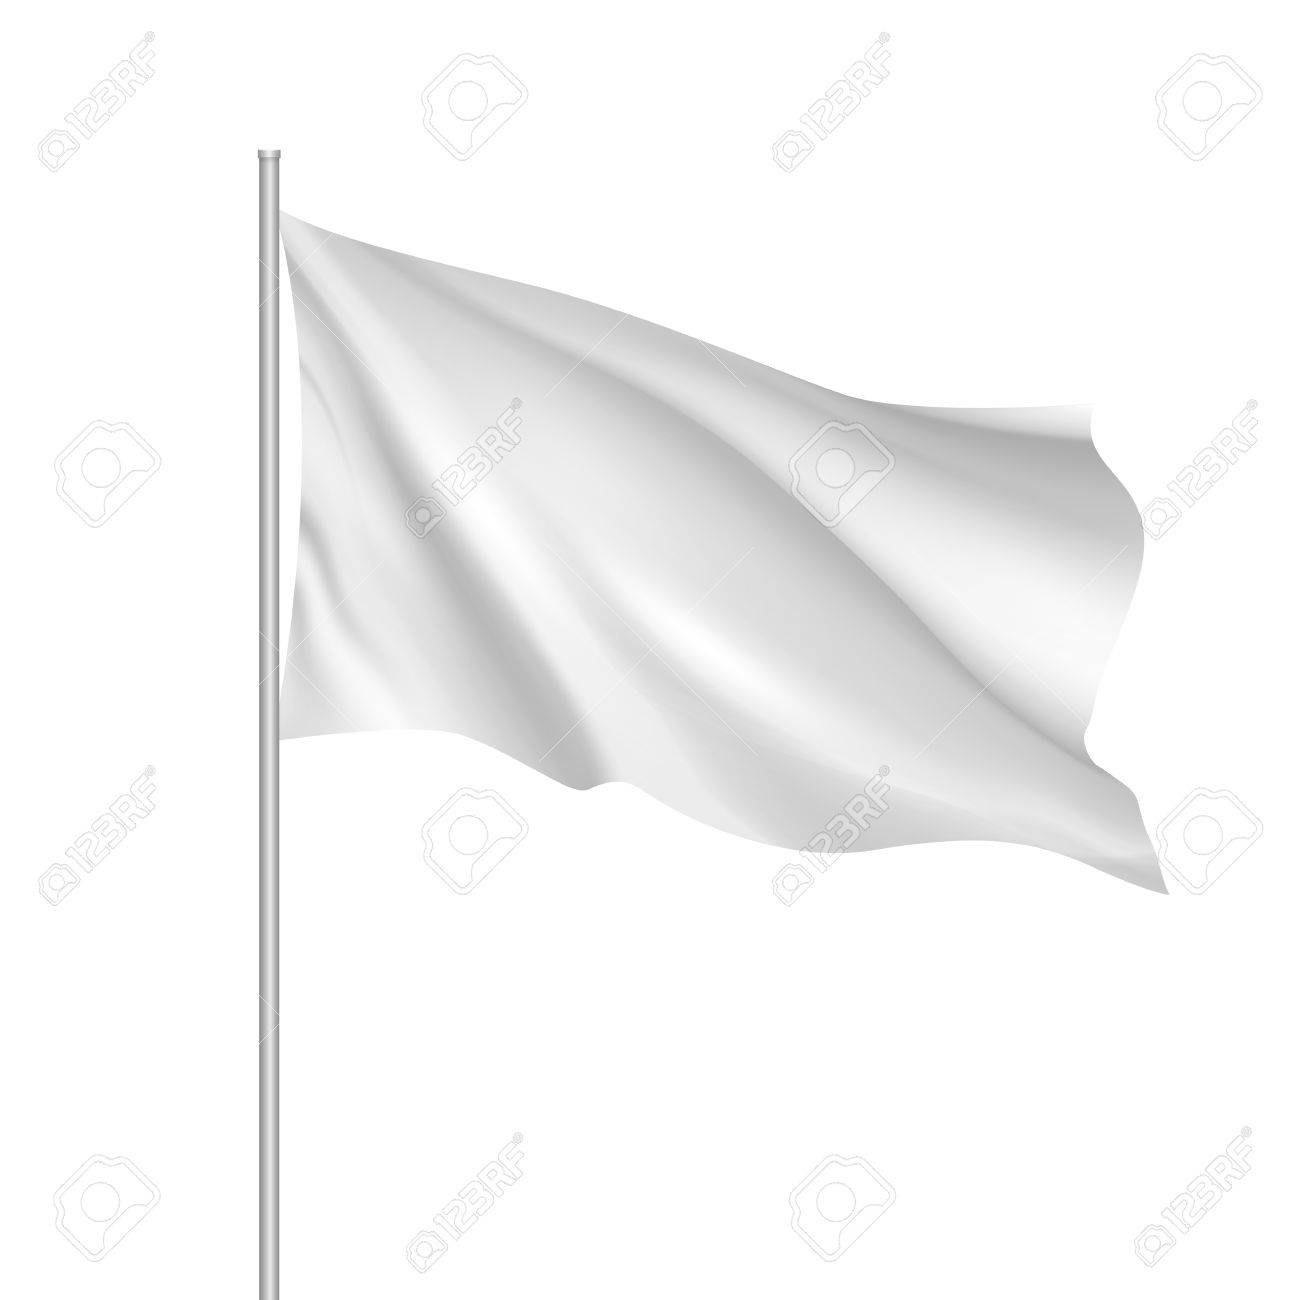 Flag Template | White Waving Flag Template Clean Horizontal Flag For Your Design